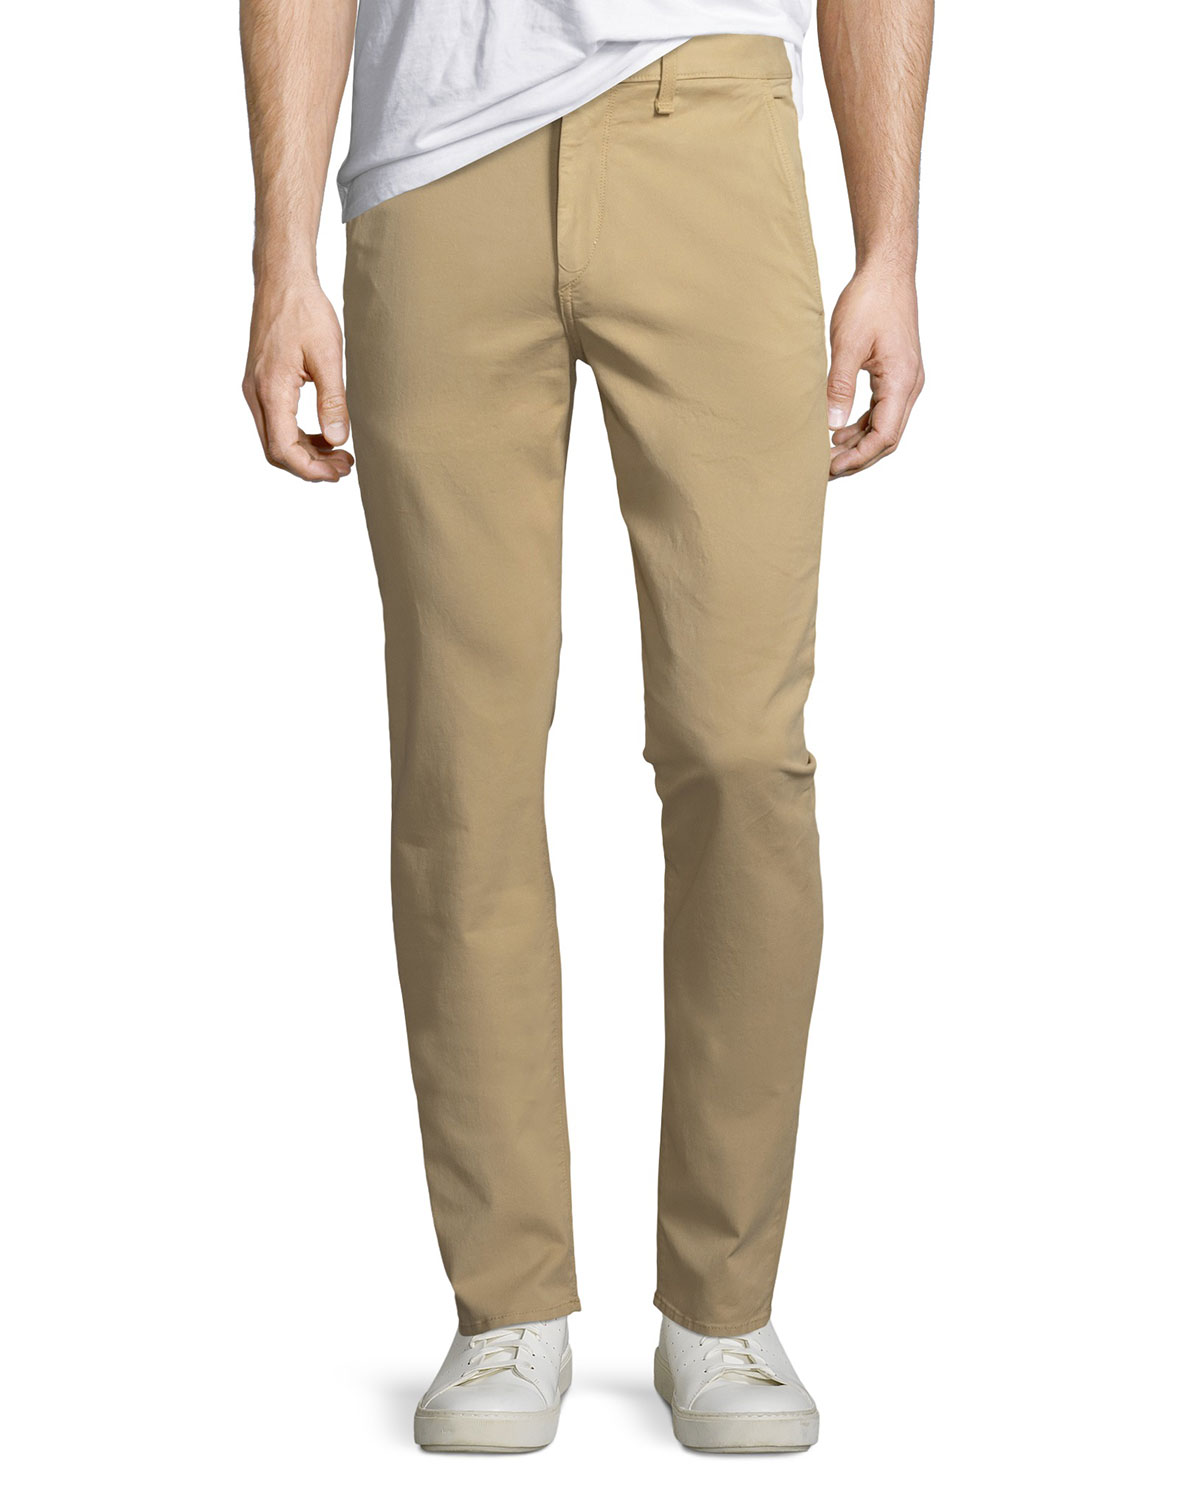 470e02070b14c1 Rag & Bone Men's Standard Issue Fit 2 Mid-Rise Relaxed Slim-Fit Chino